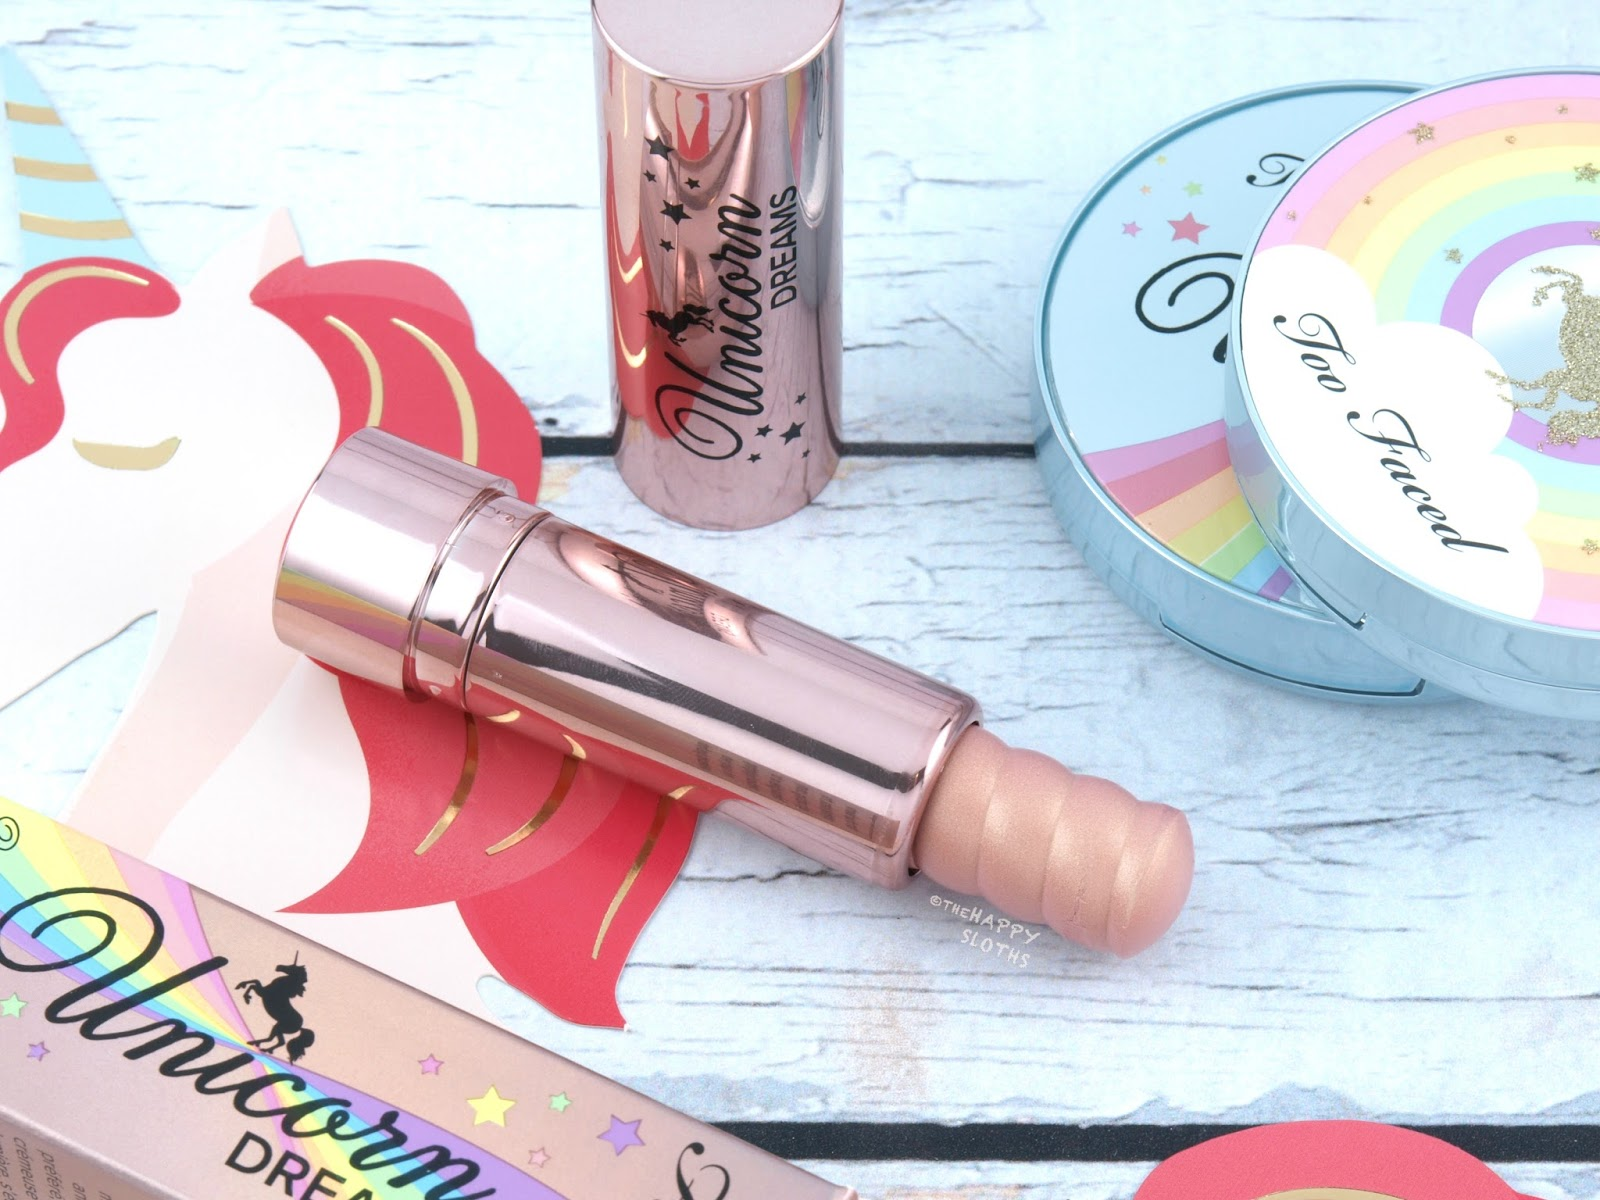 Too Faced | Life's A Festival Unicorn Dreams Unicorn Horn Highlighting Stick: Review and Swatches